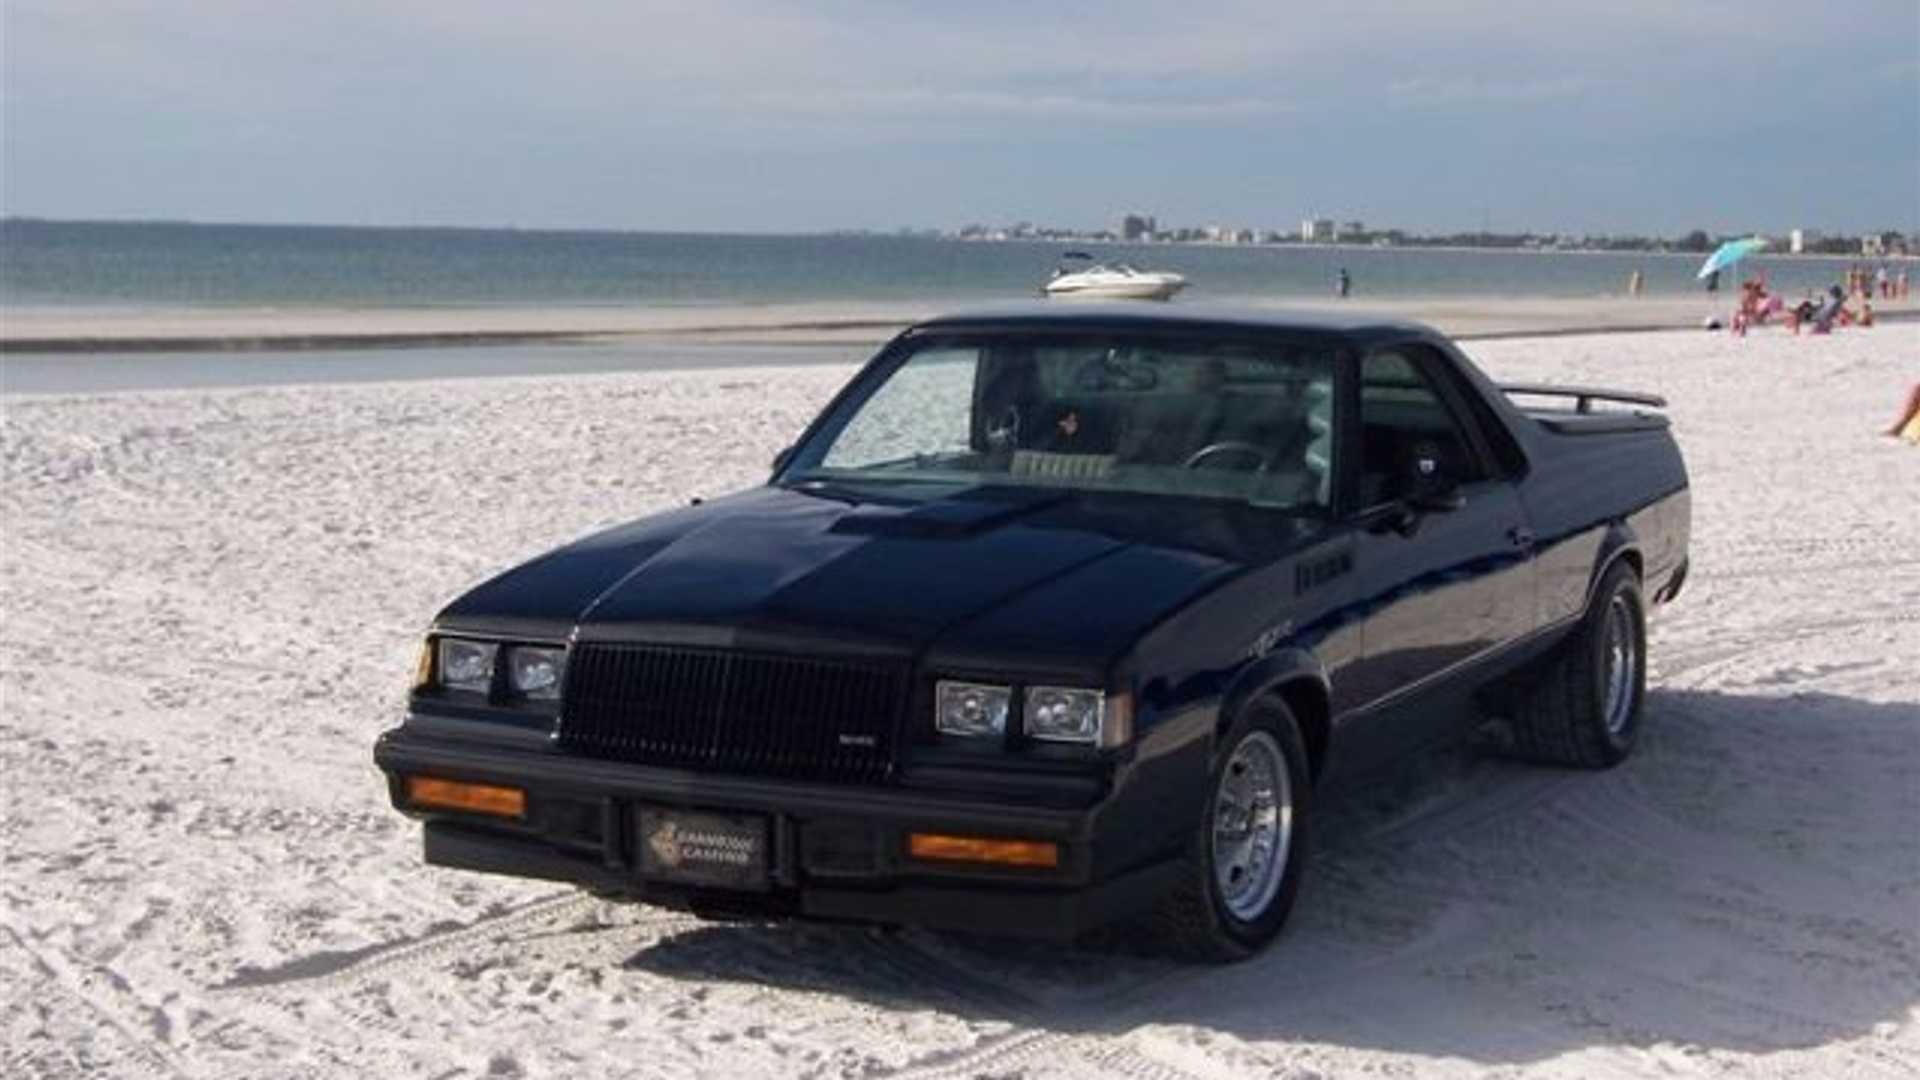 "[""1984 'Grand Camino' Combines Chevy And Buick Flare""]"